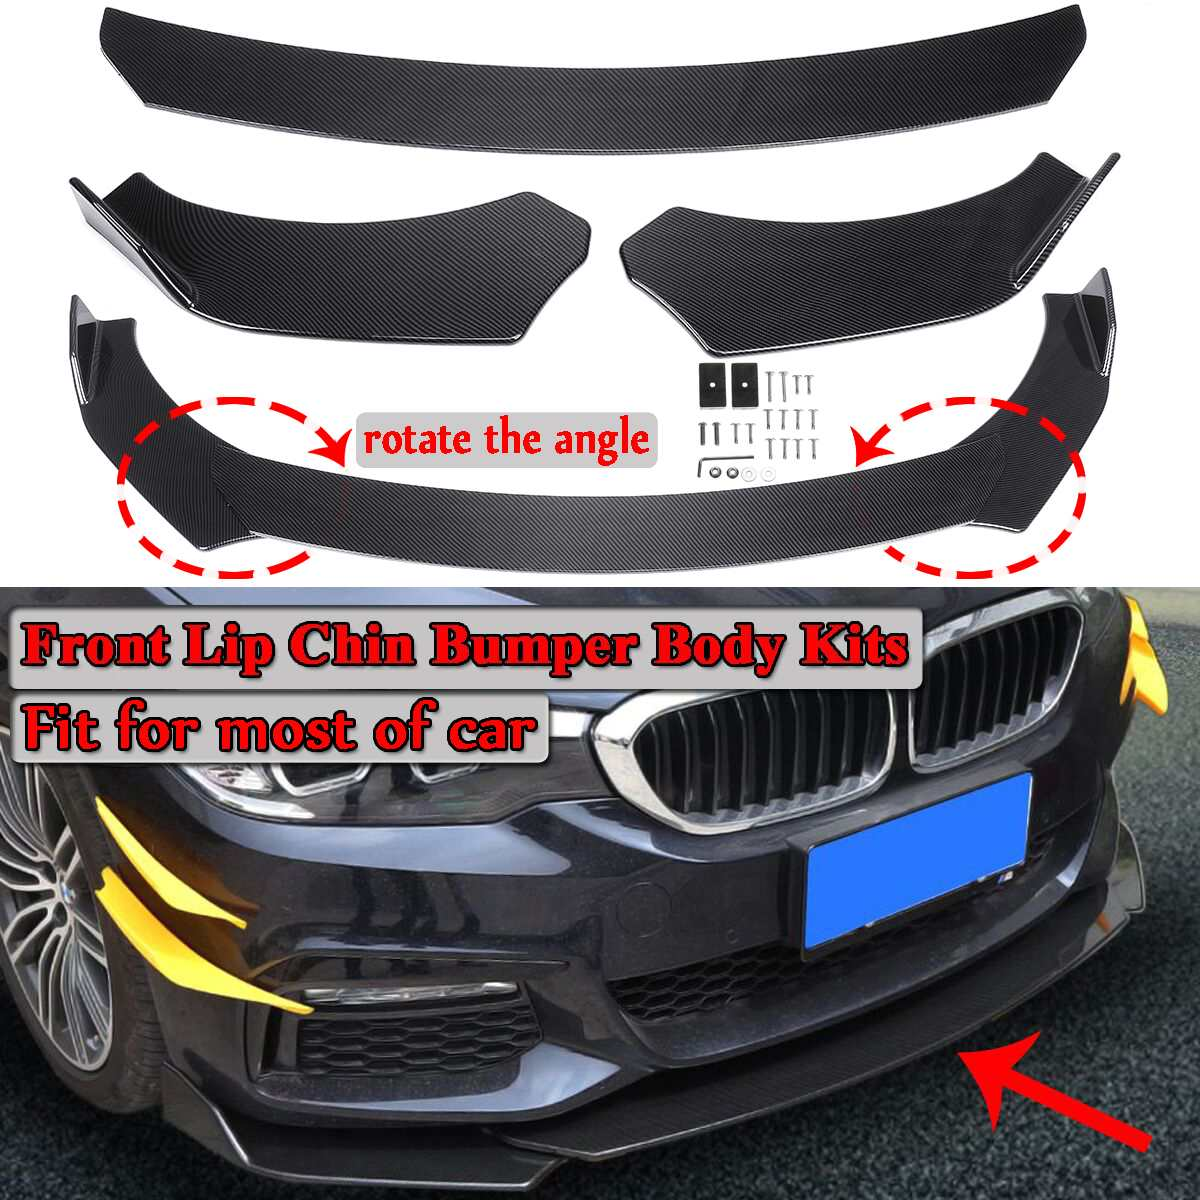 Carbon Fiber Look/ Black Universal 3Pieces Car Front Lip Chin Bumper Body Kits Rotate The Angle New For Honda For Ford For Benz